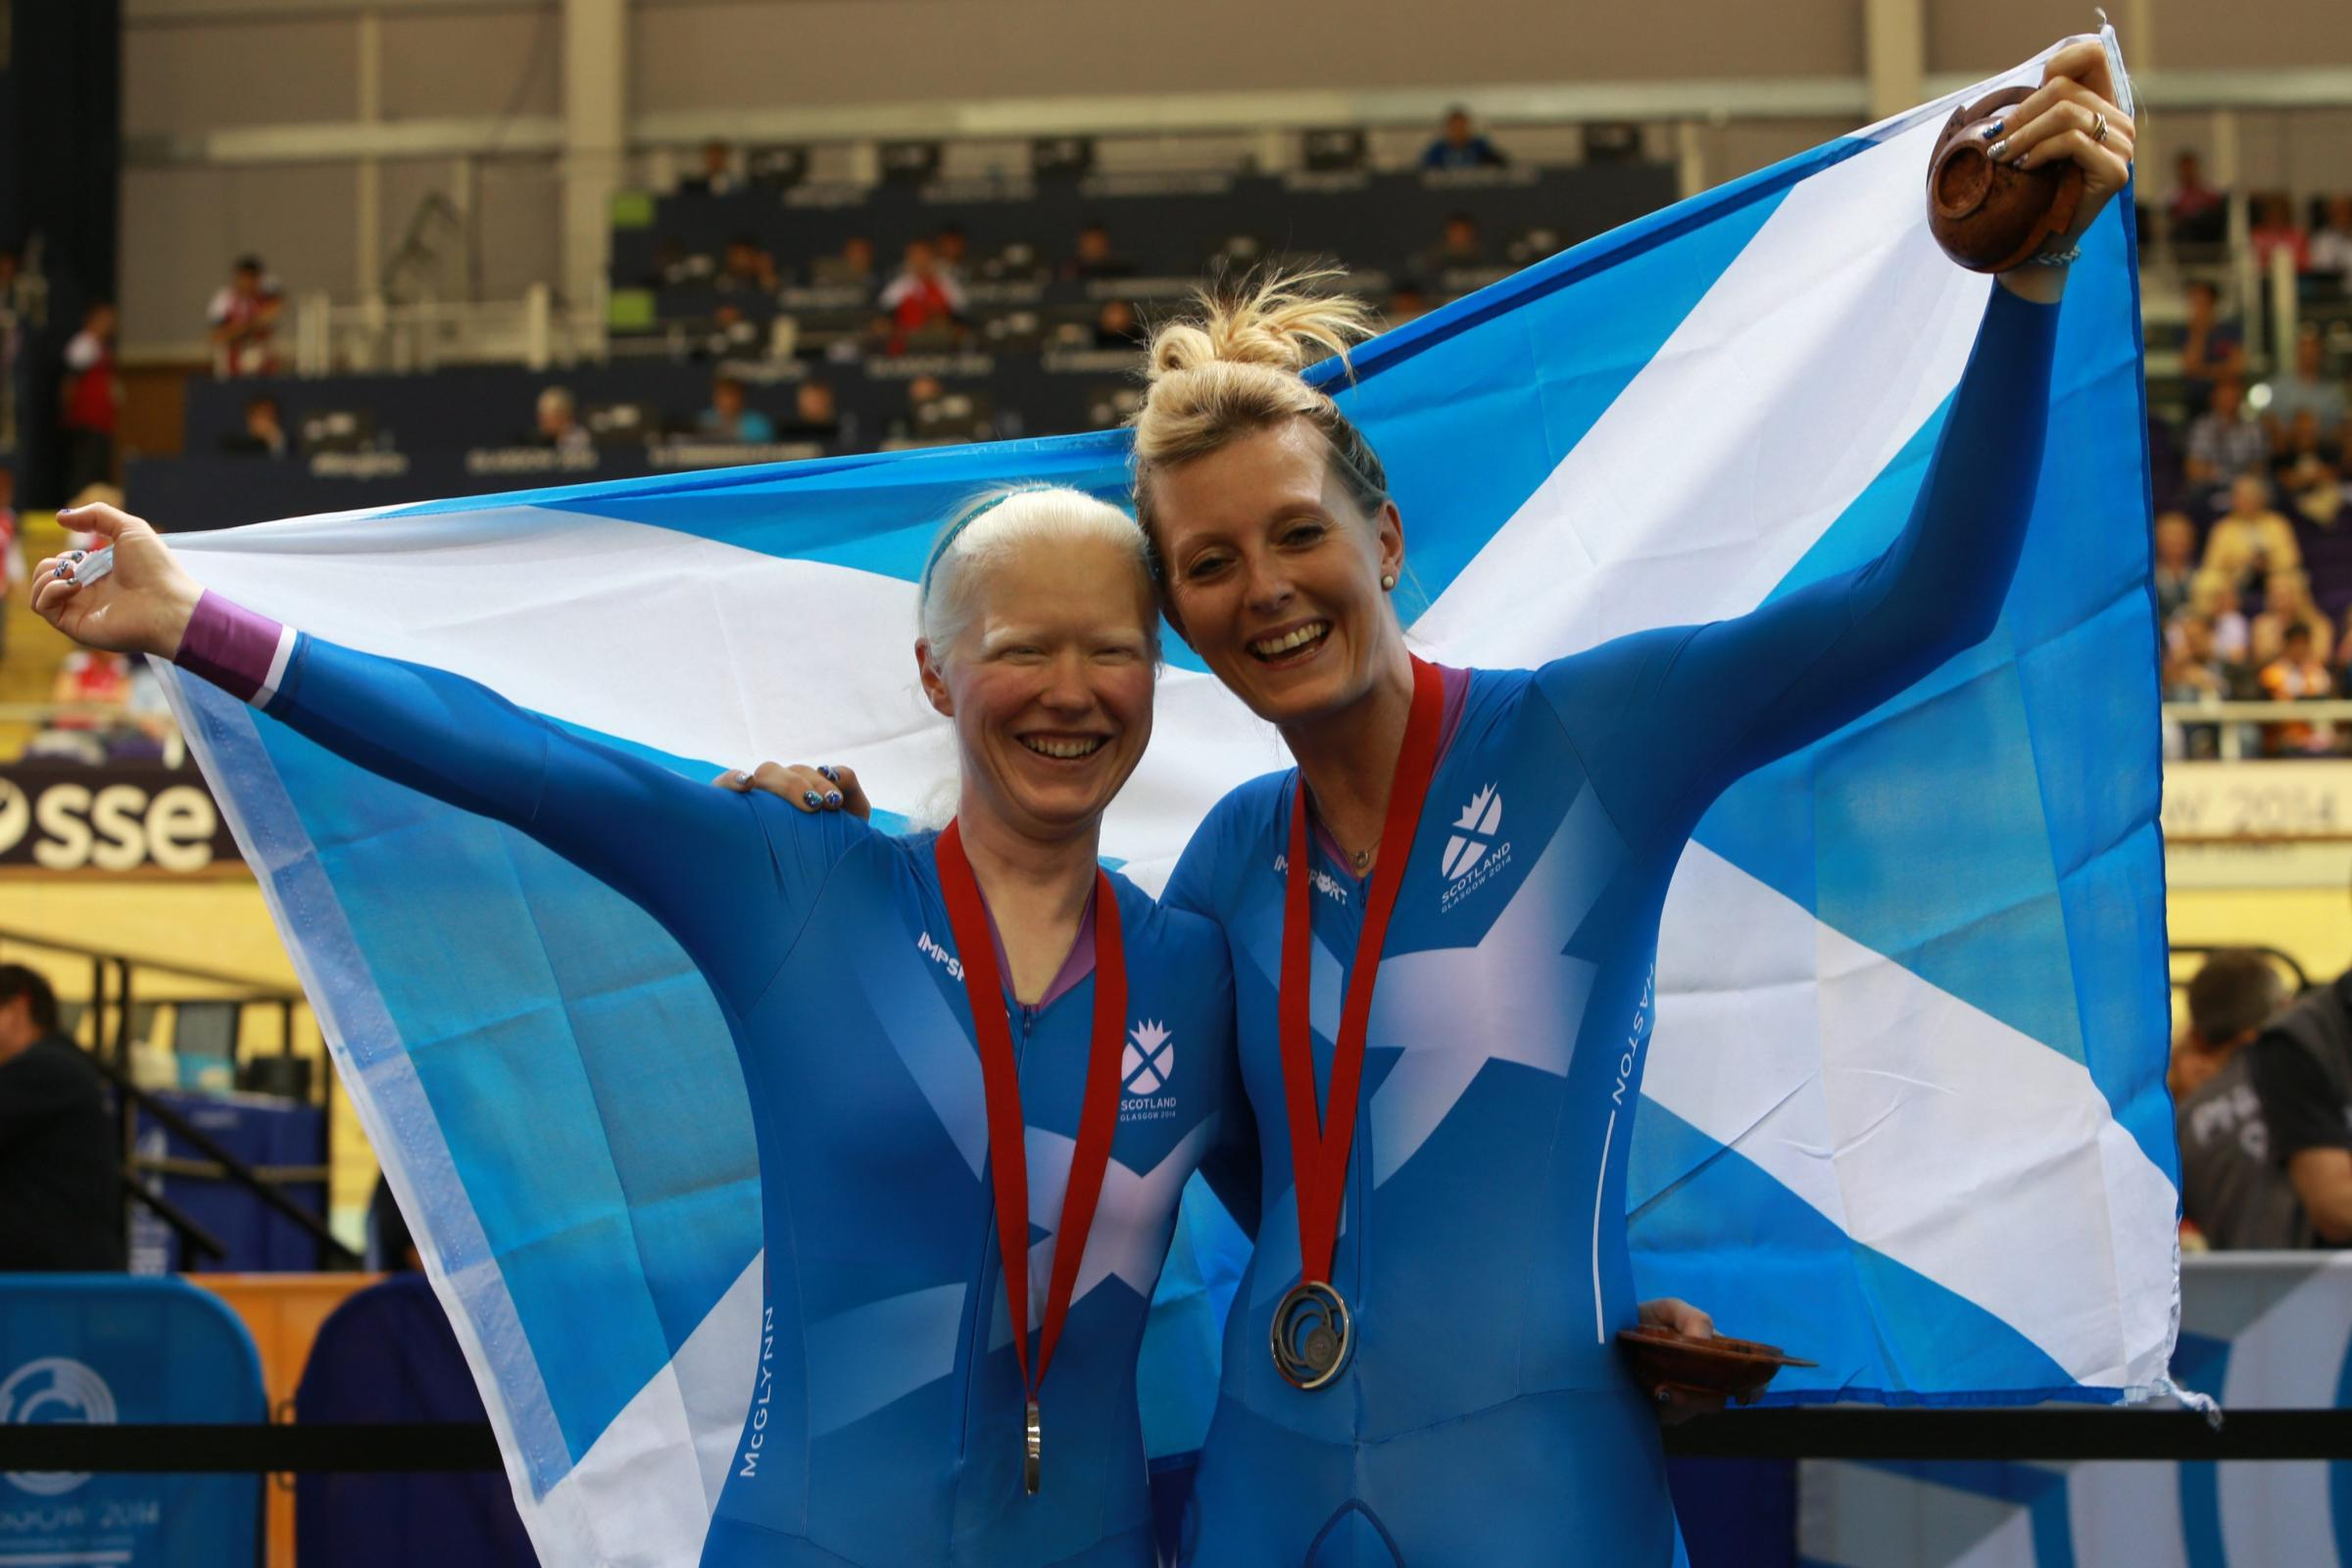 Scottish cyclists Aileen McGlynn and Louise Haston who took double silver at the 2014 Commonwealth Games in Glasgow. Photograph: Stewart Attwood